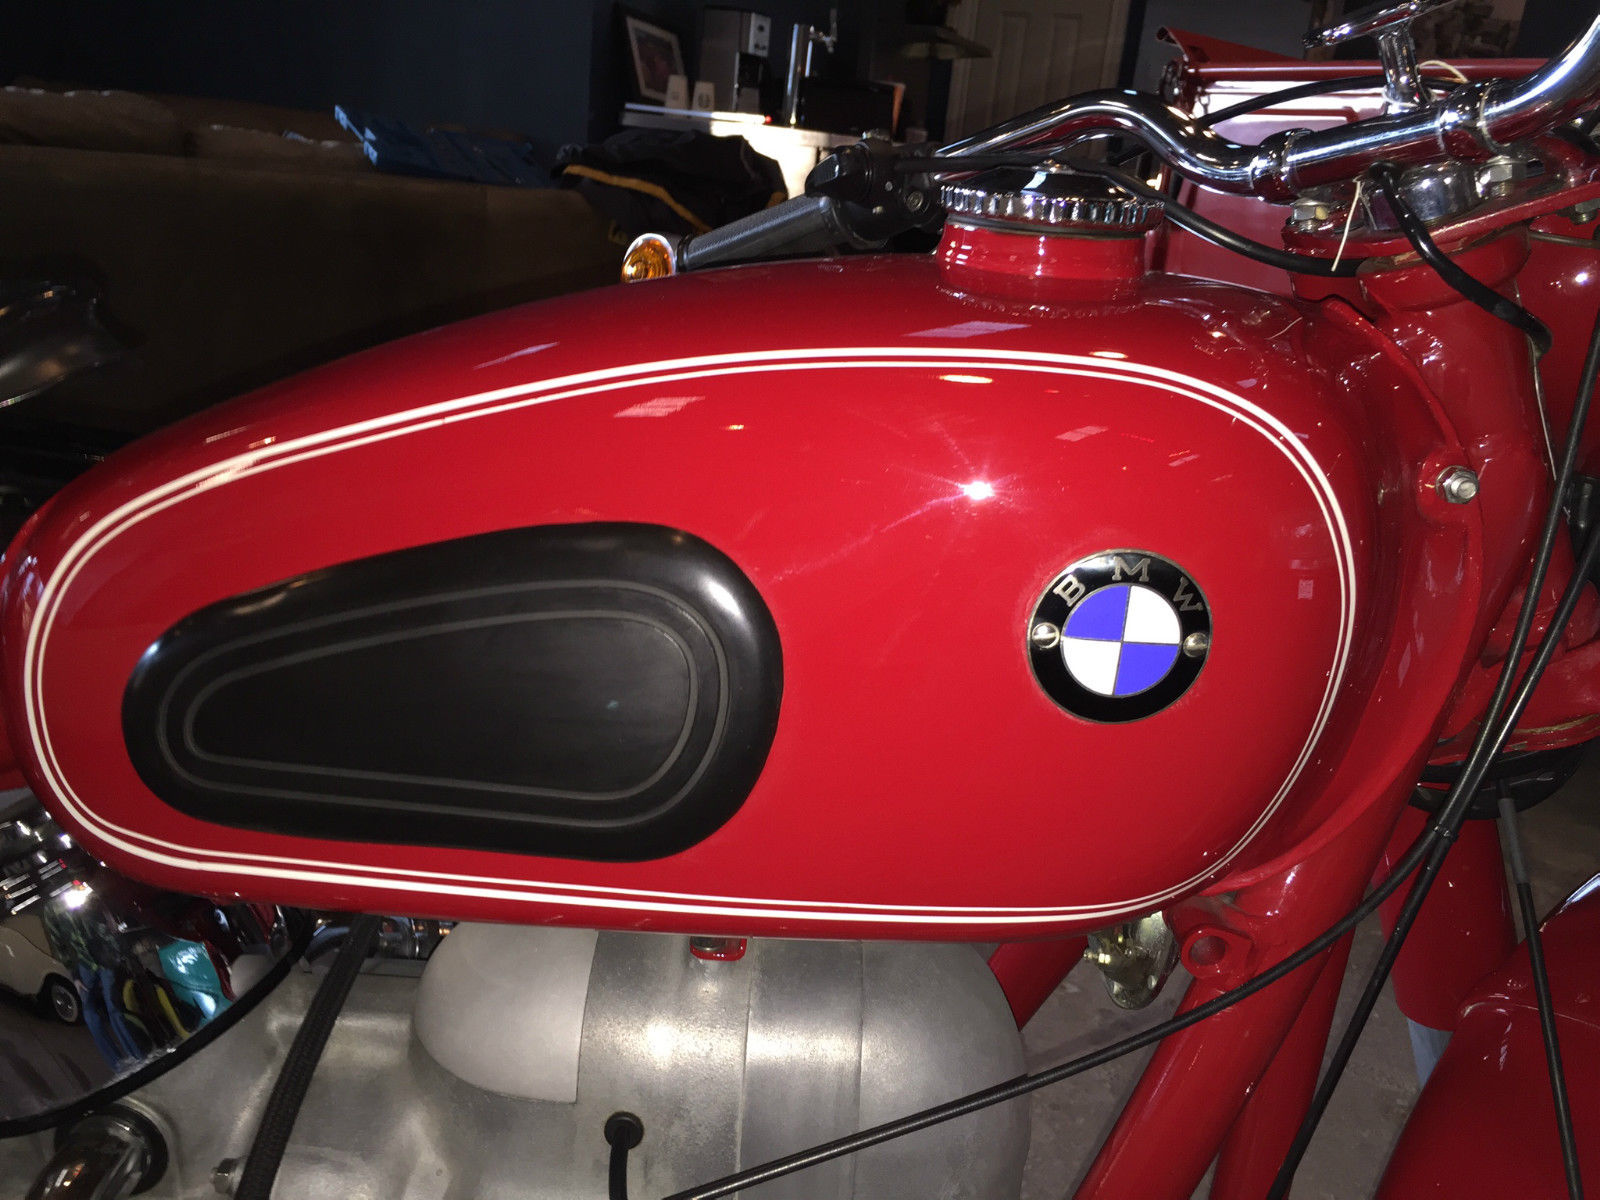 Restored Bmw R60 2 1966 Photographs At Classic Bikes